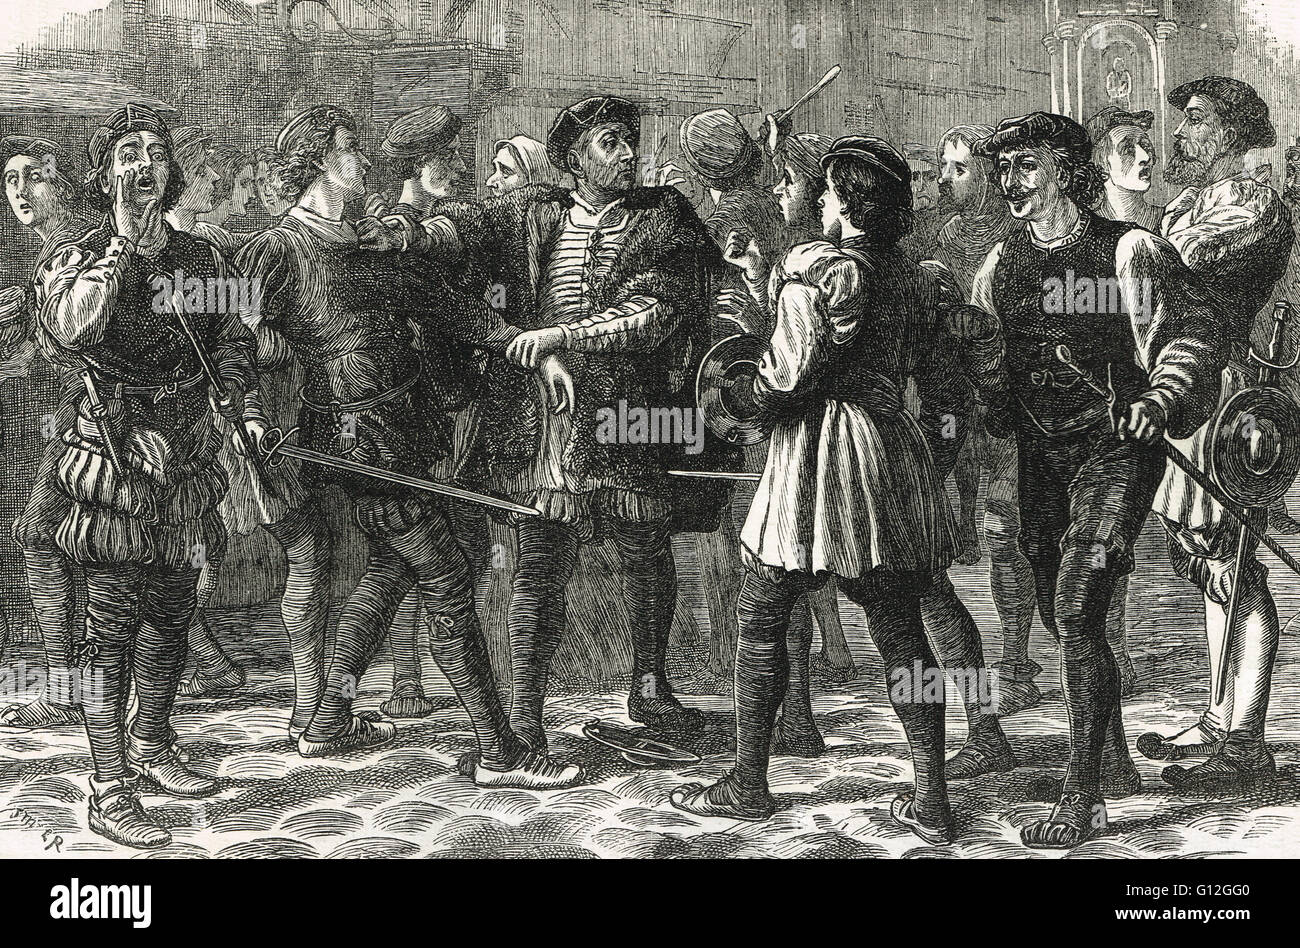 Evil May Day Riot in Cheapside 1517 - Stock Image